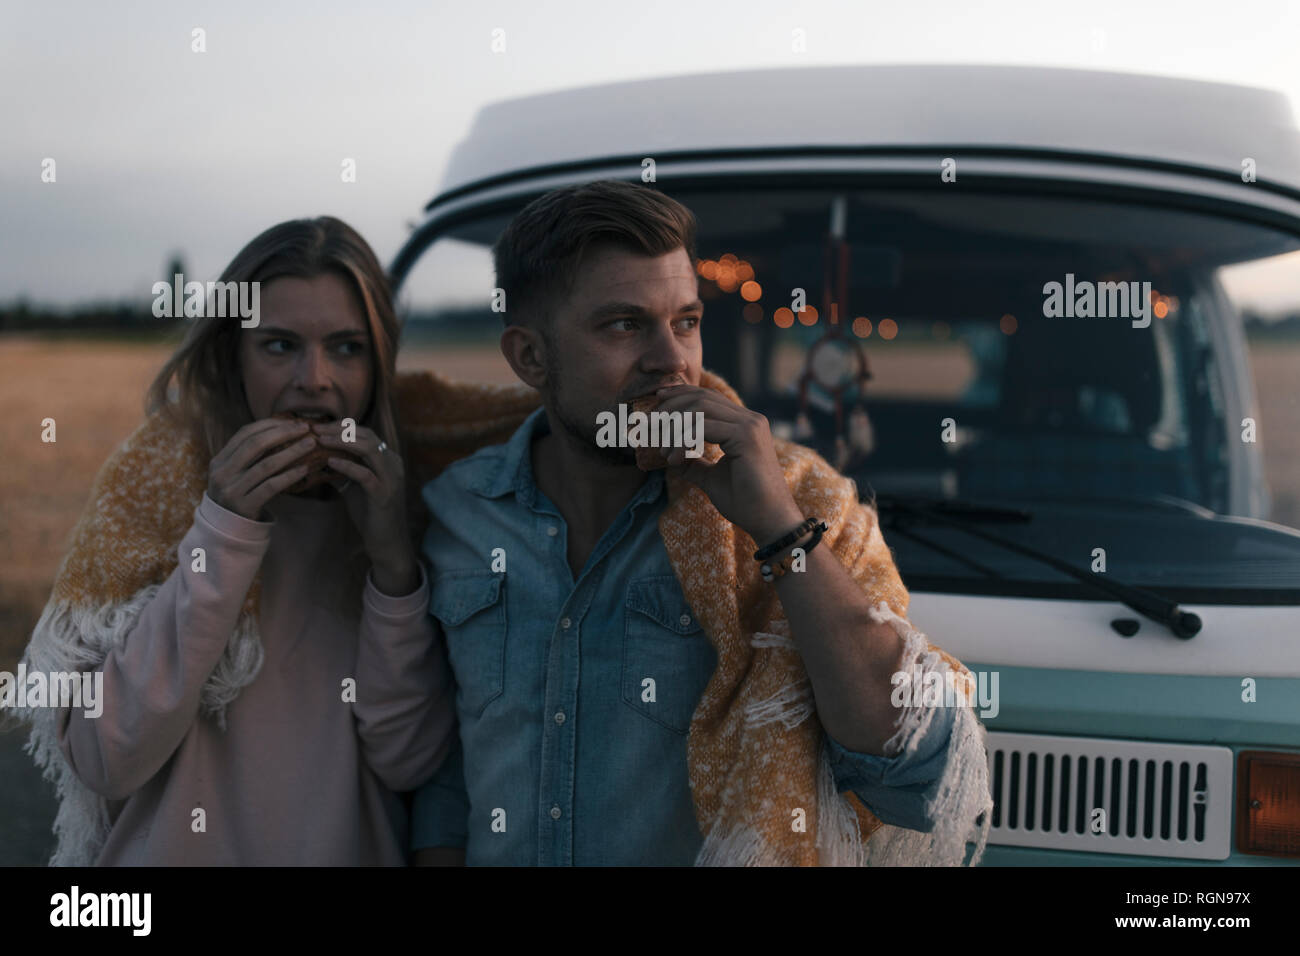 Couple wrapped in a blanket at camper van having a snack in rural landscape Stock Photo